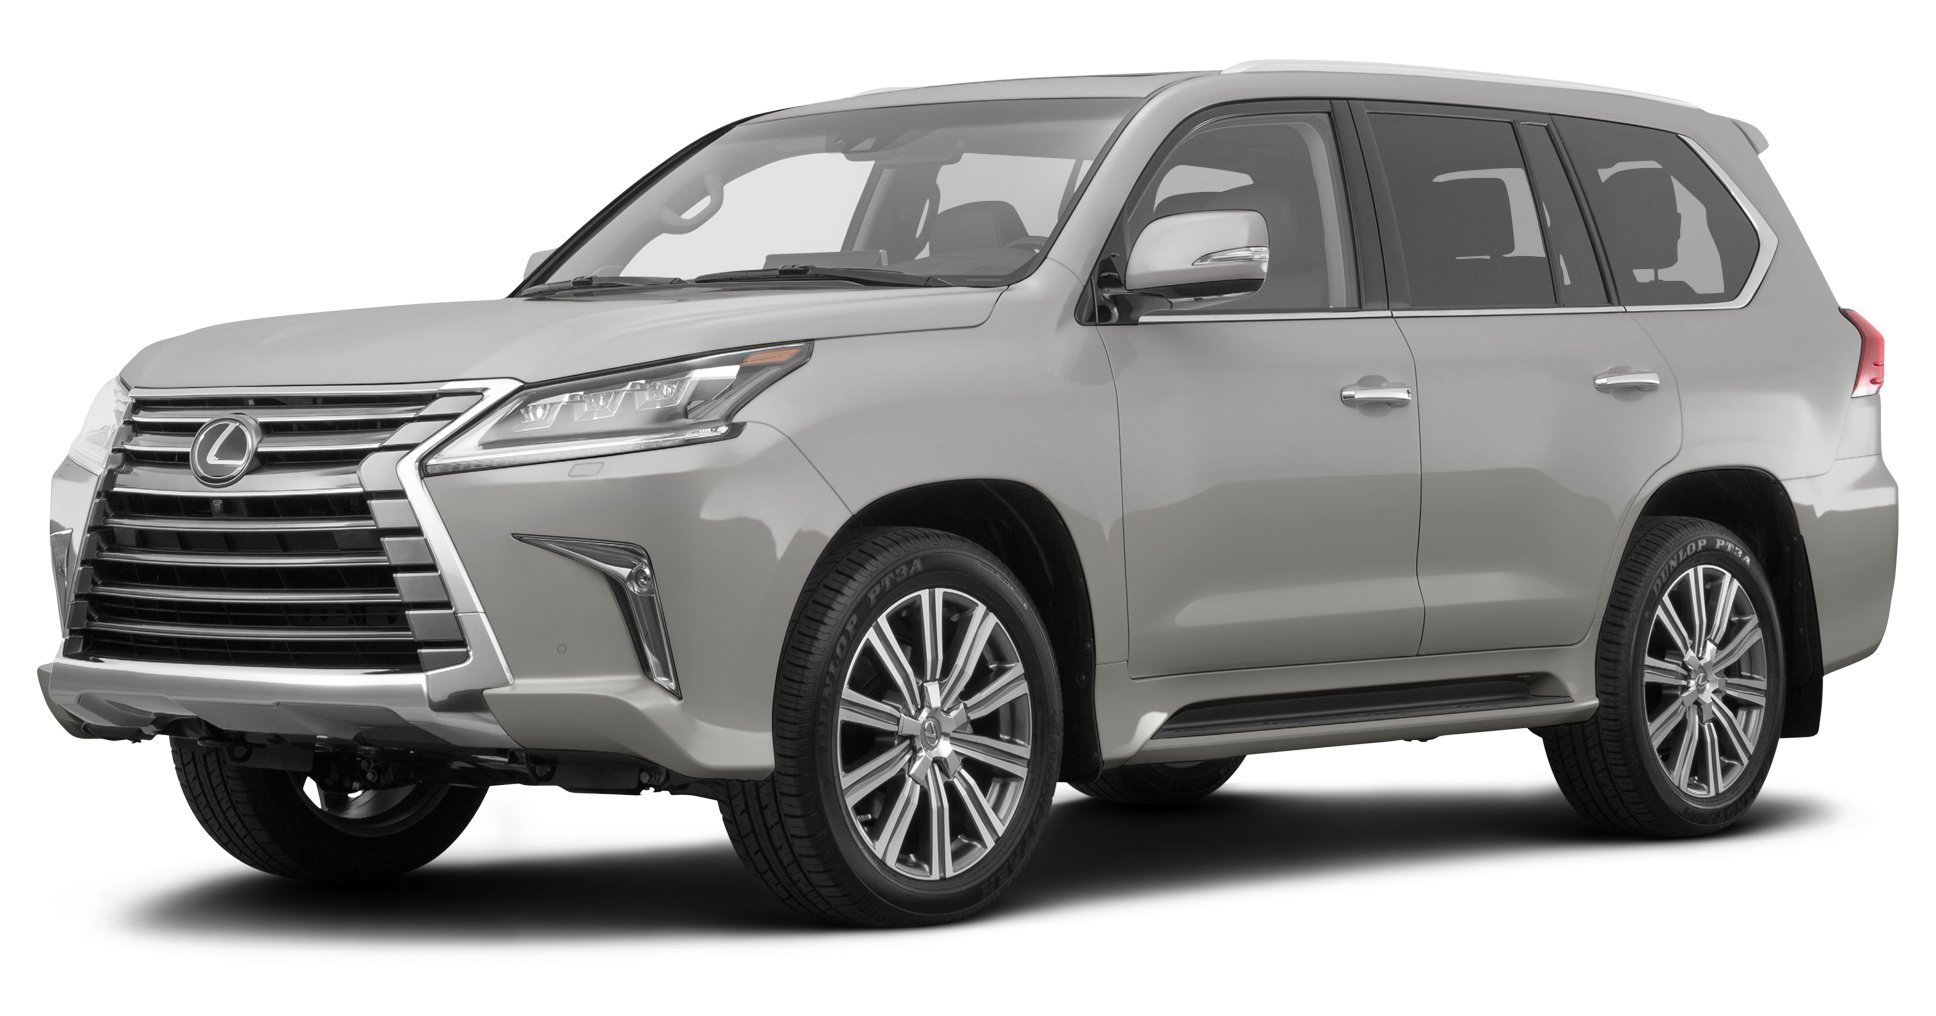 71SydKRR2lL Take A Look About 2009 Lexus Lx 570